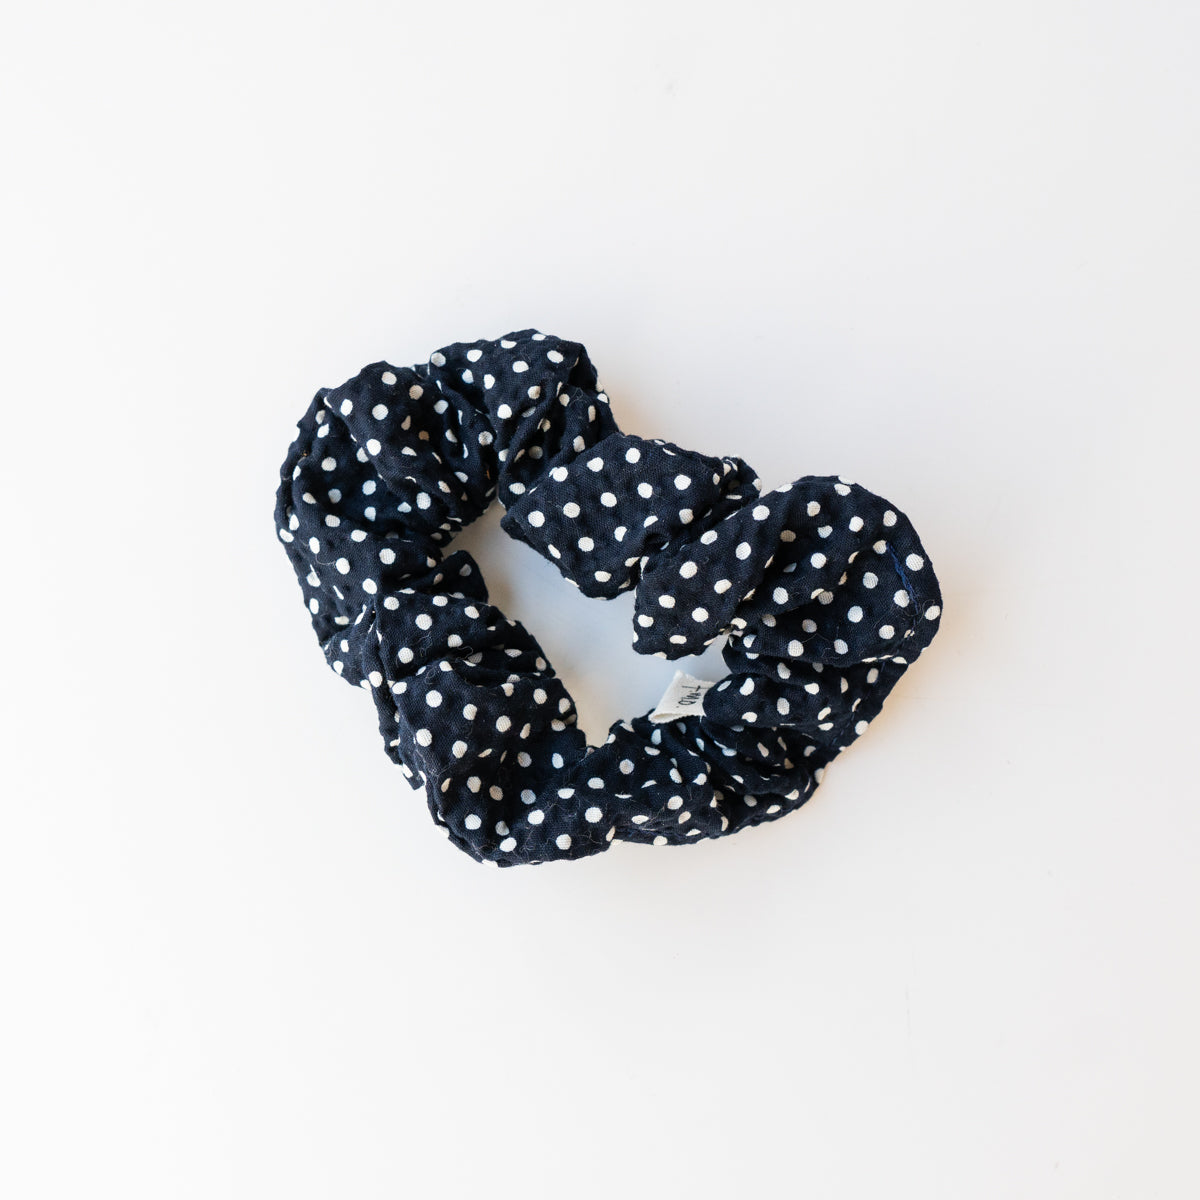 Scrunchie - Black Polka Dot